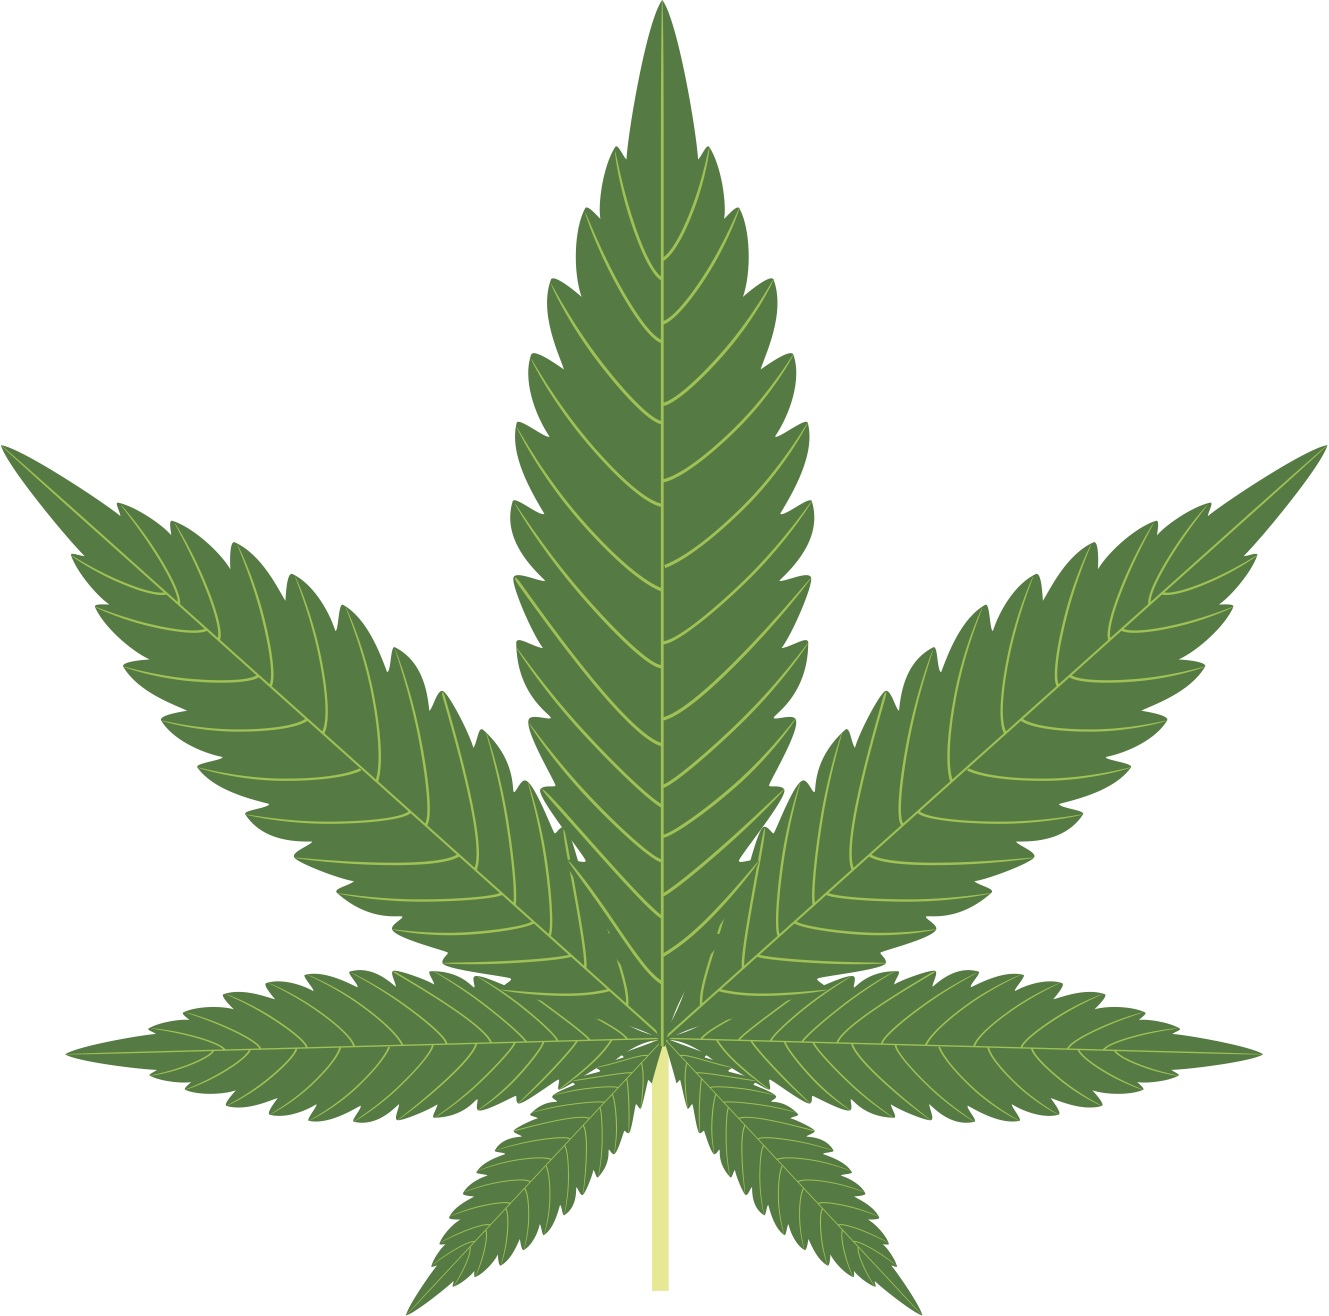 Marijuana (Cannabis) in Costa Rica